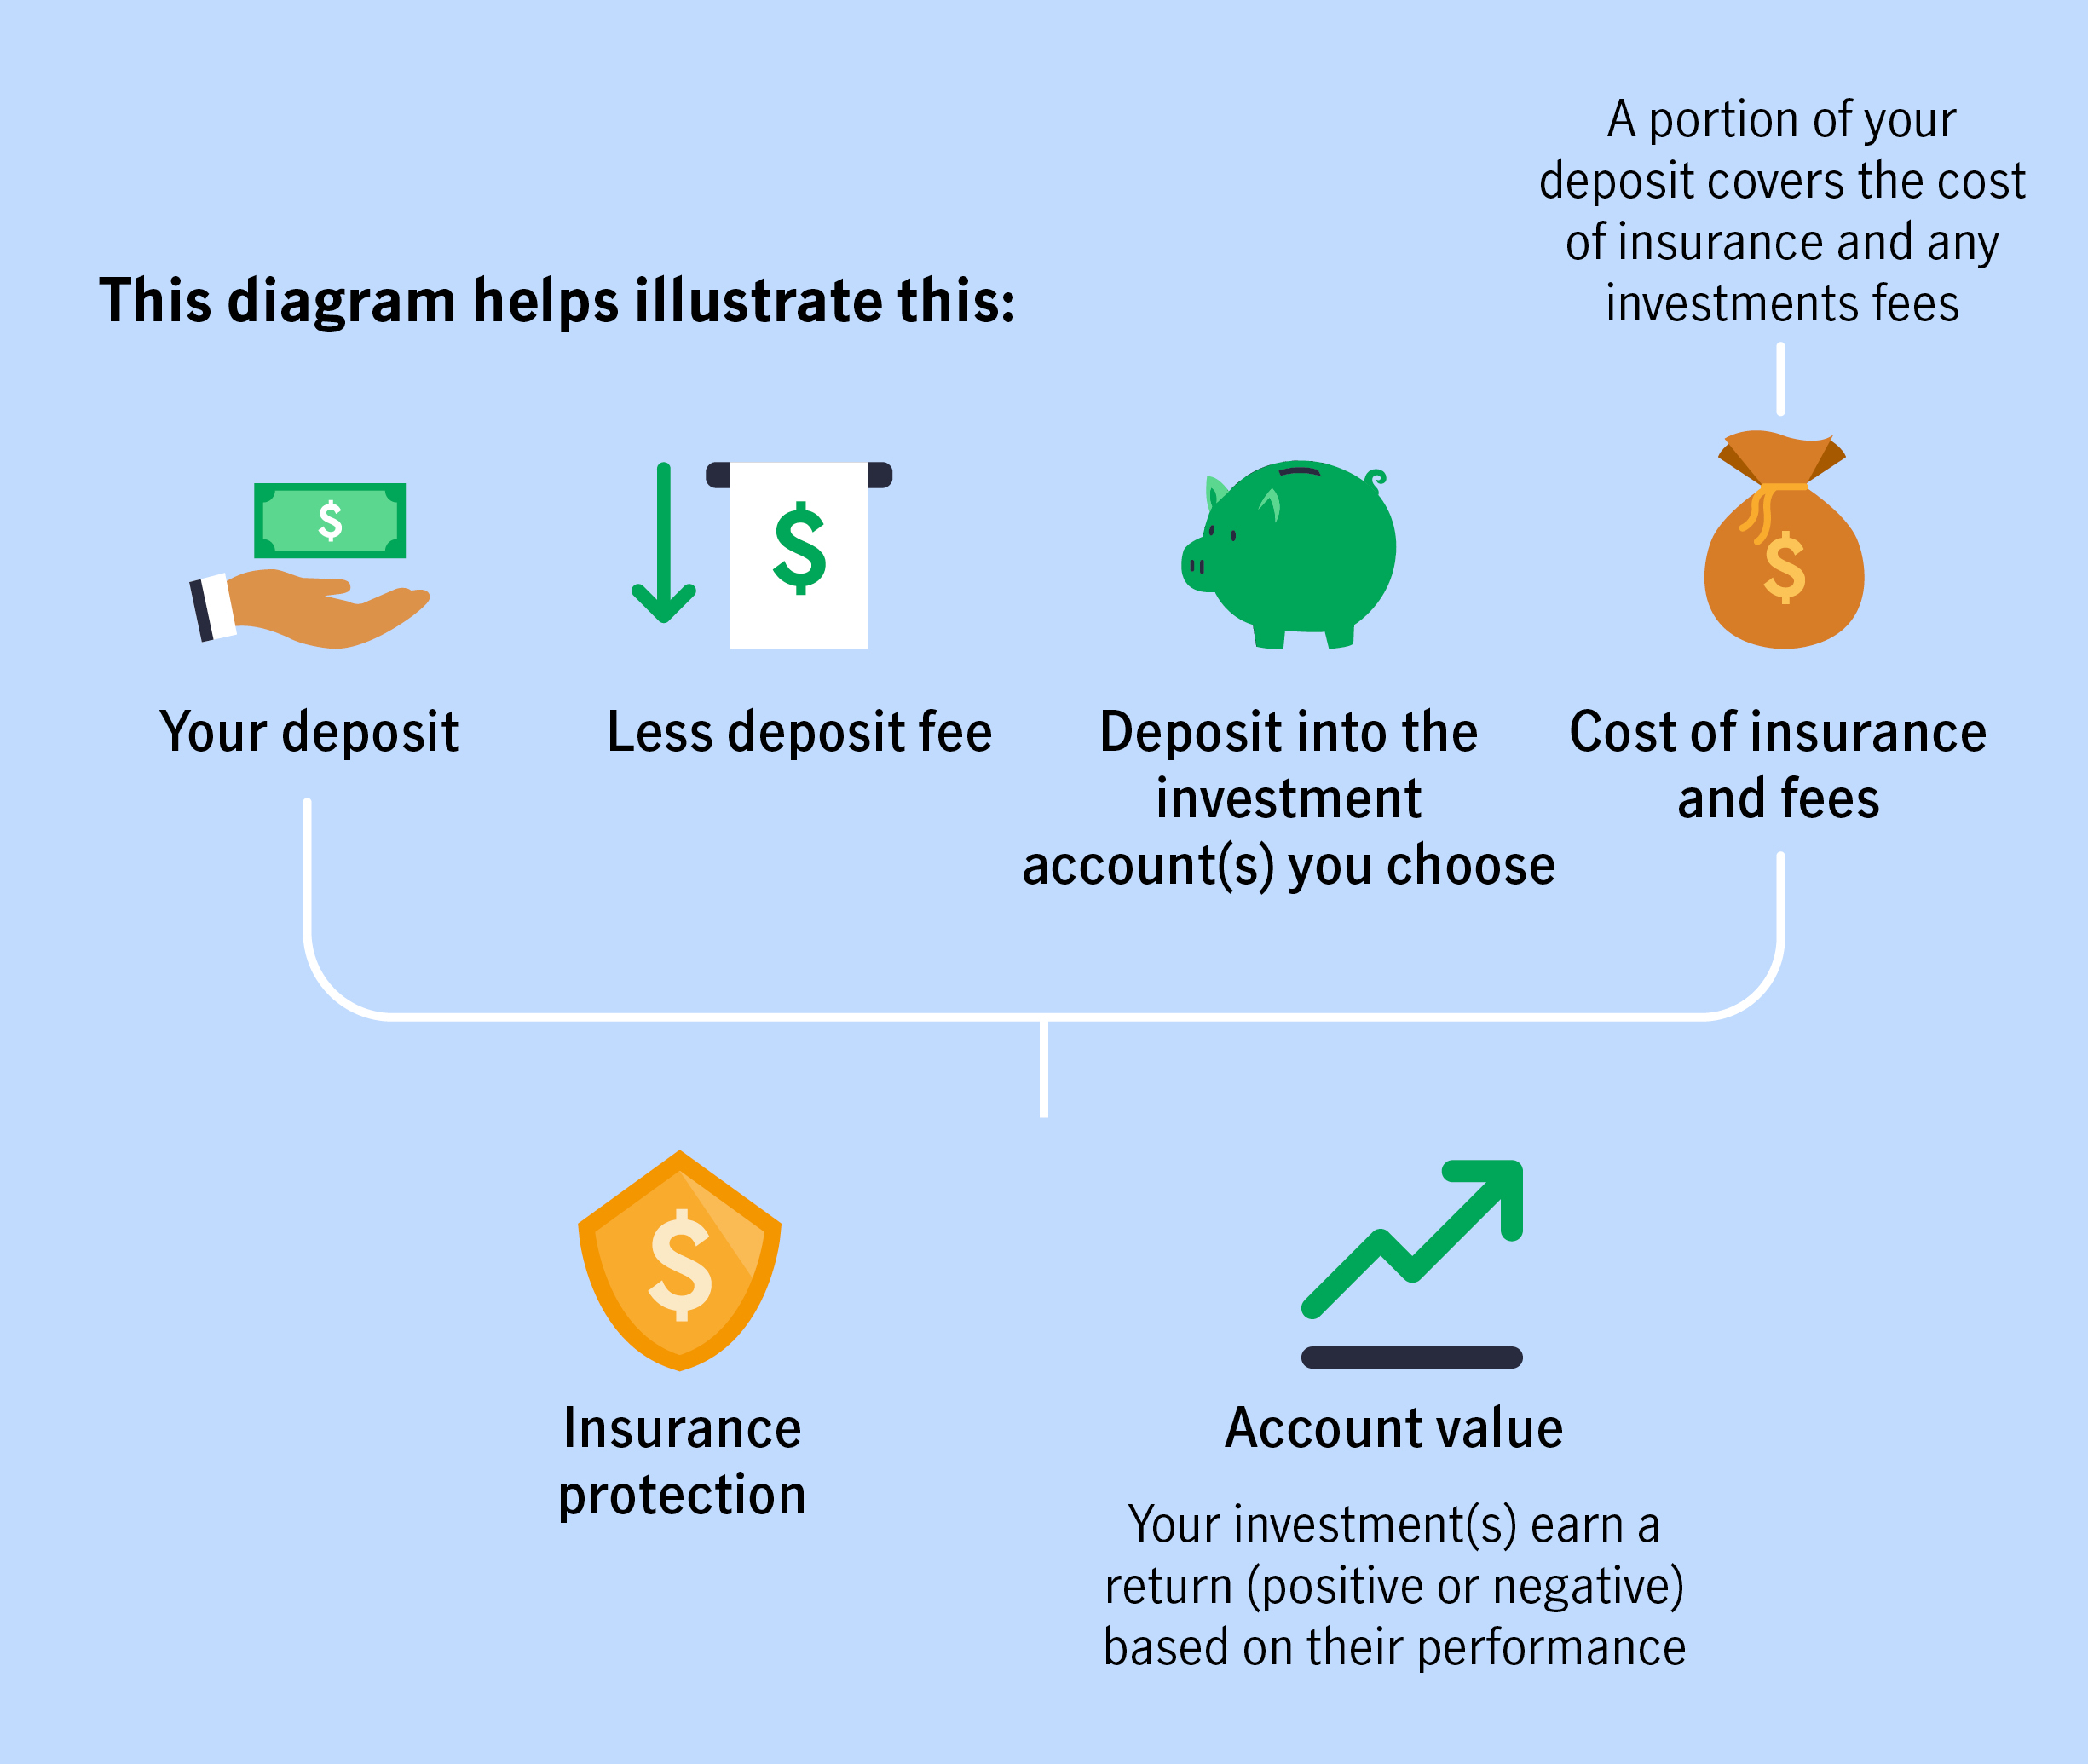 This diagram helps illustrate this: Your deposit, less deposit fee, deposit into the investment account(s) you choose, cost of insurance and fees (A portion of your deposit covers the cost of insurance and any investment fees), gives you insurance protection and Account value (your investments earn a return (negative or positive) based on their performance.